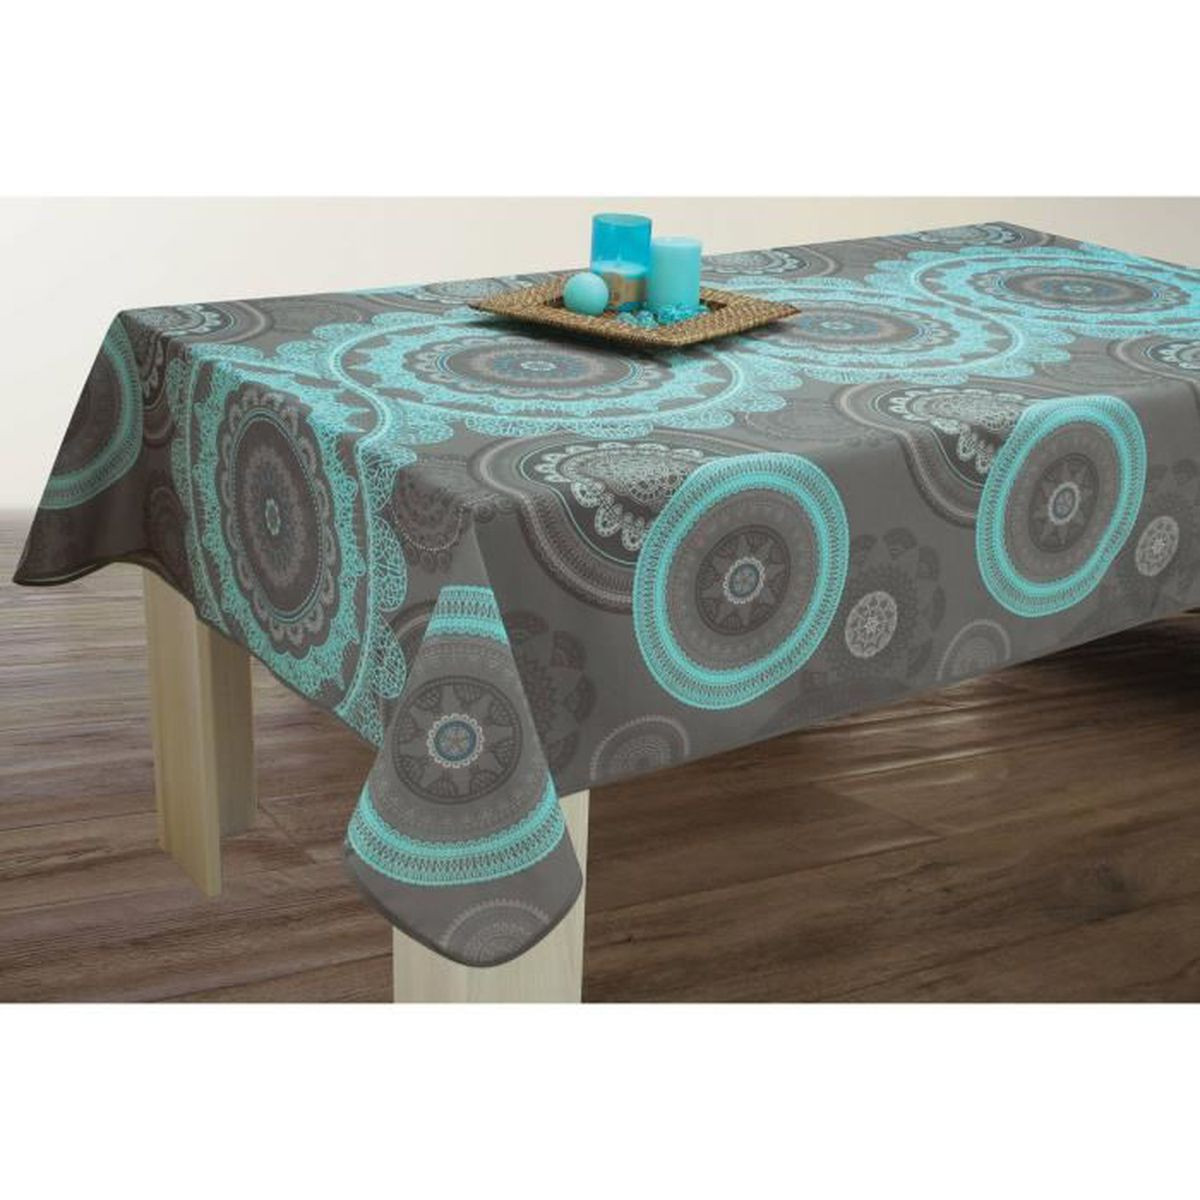 nappe anti taches rectangulaire 150x240 cm mandala turquoise achat vente nappe de table. Black Bedroom Furniture Sets. Home Design Ideas